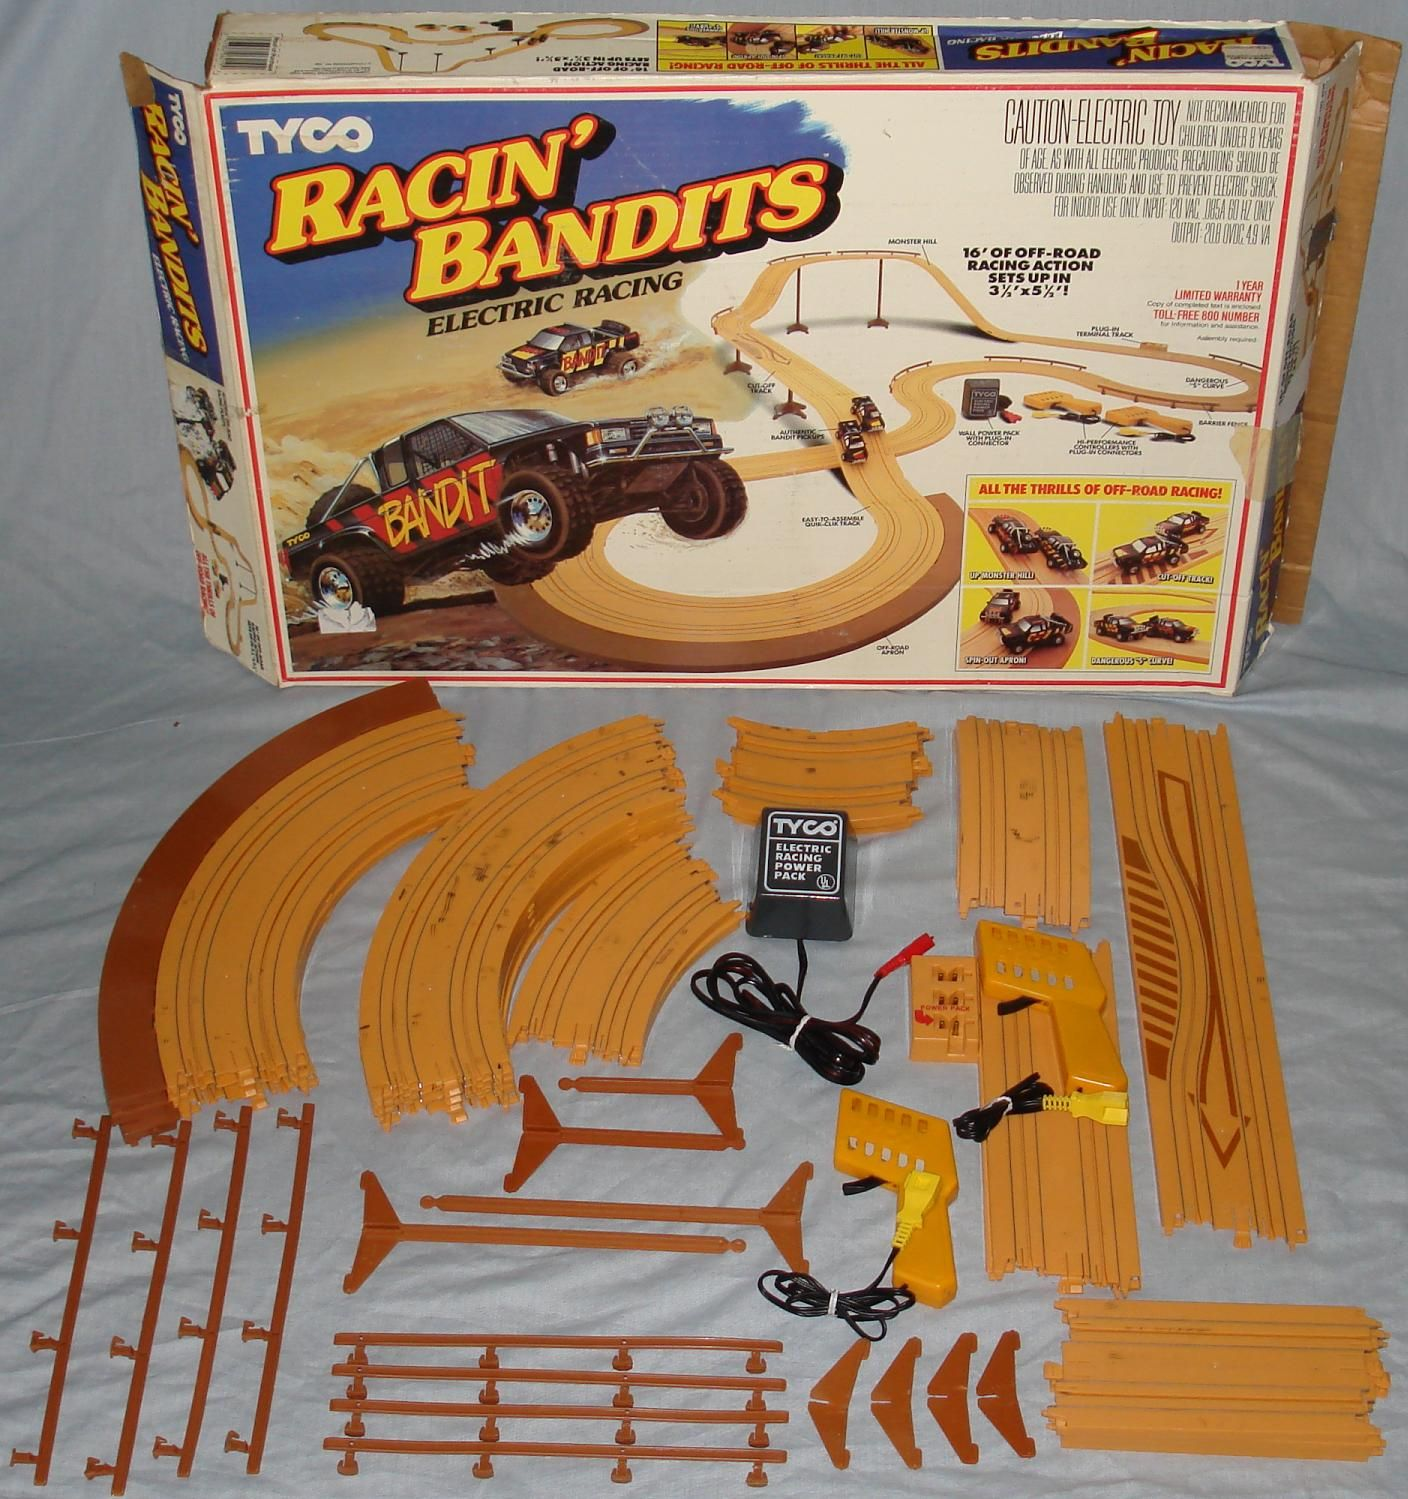 tyco racin bandits electric racing toy